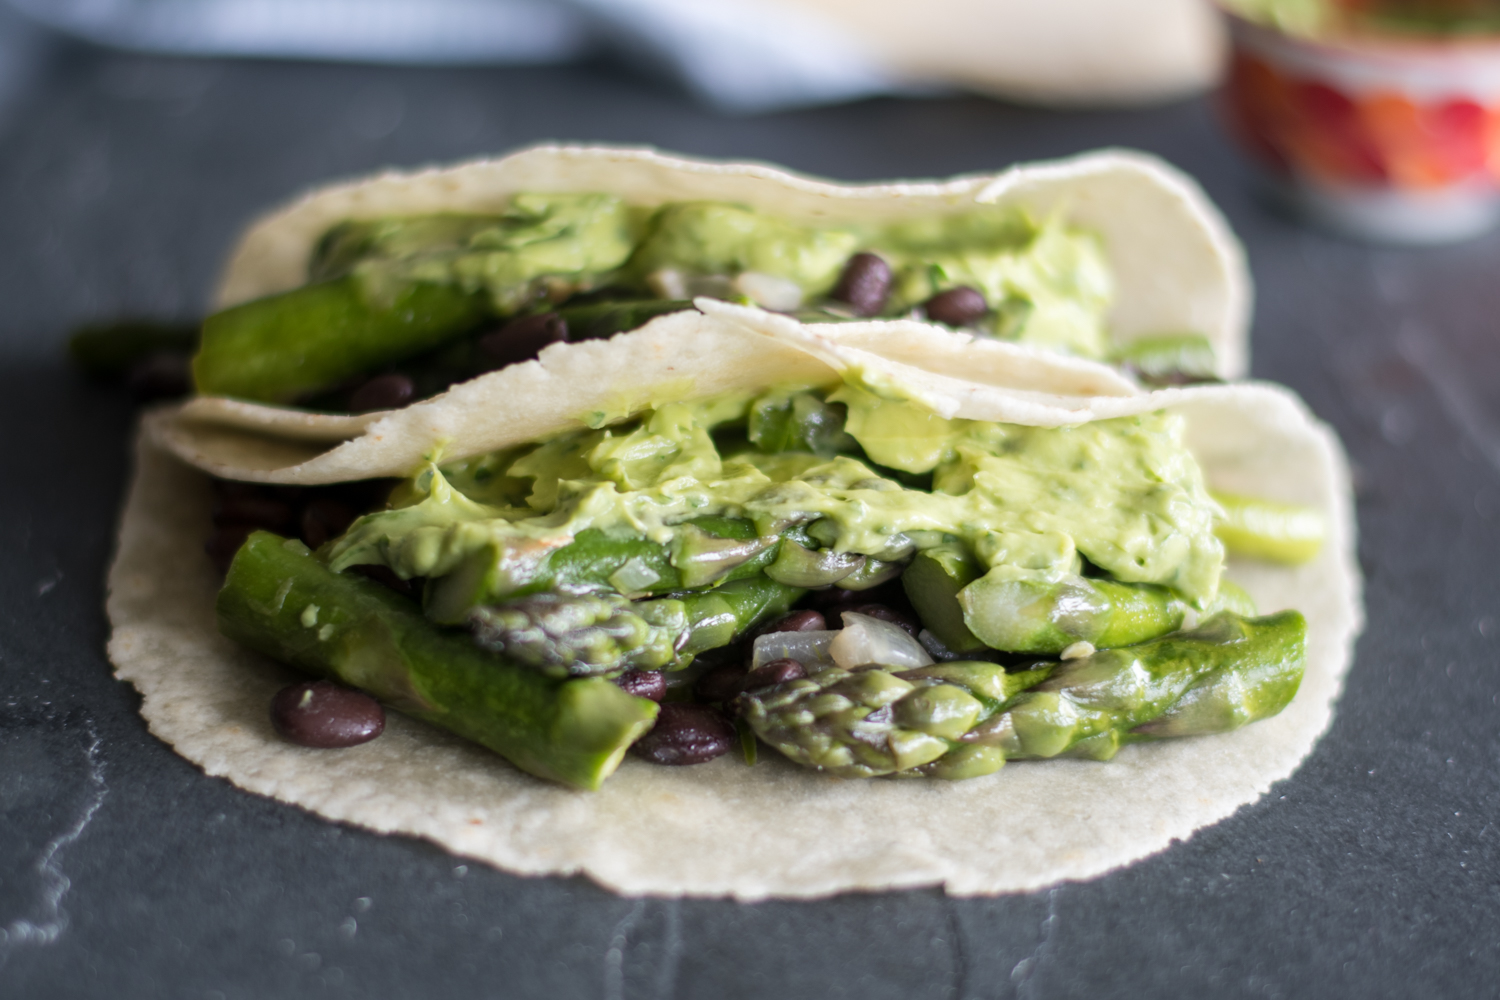 Easy Asparagus and Black Bean Tacos with avocado dip are perfect for spring! #vegan #tacos #spring #avocado #blackbean